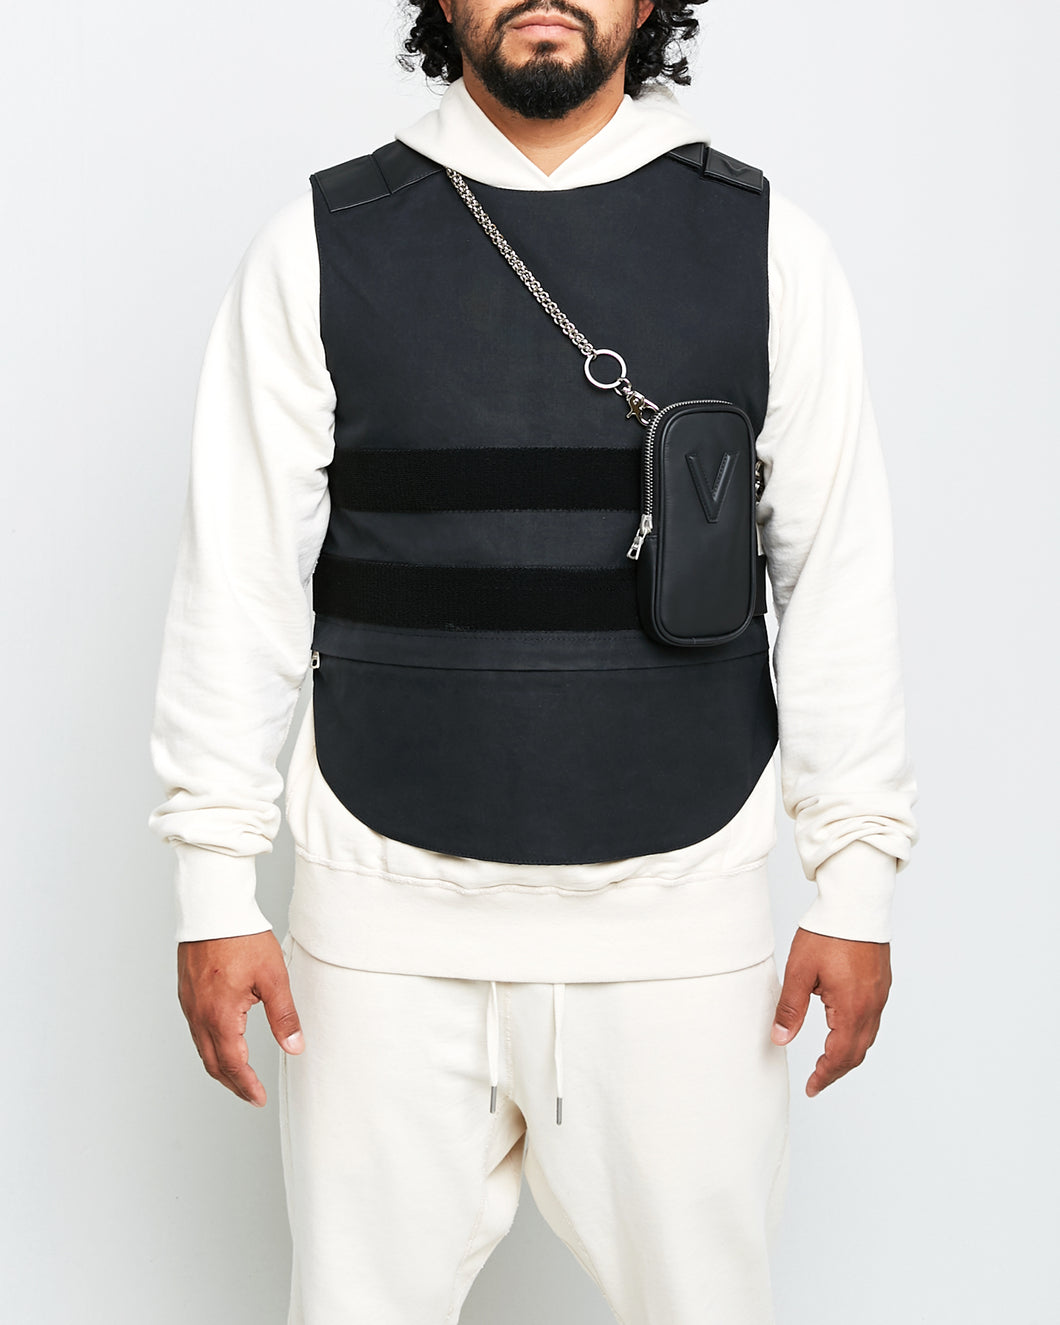 The Artist Vest With Poet Bag